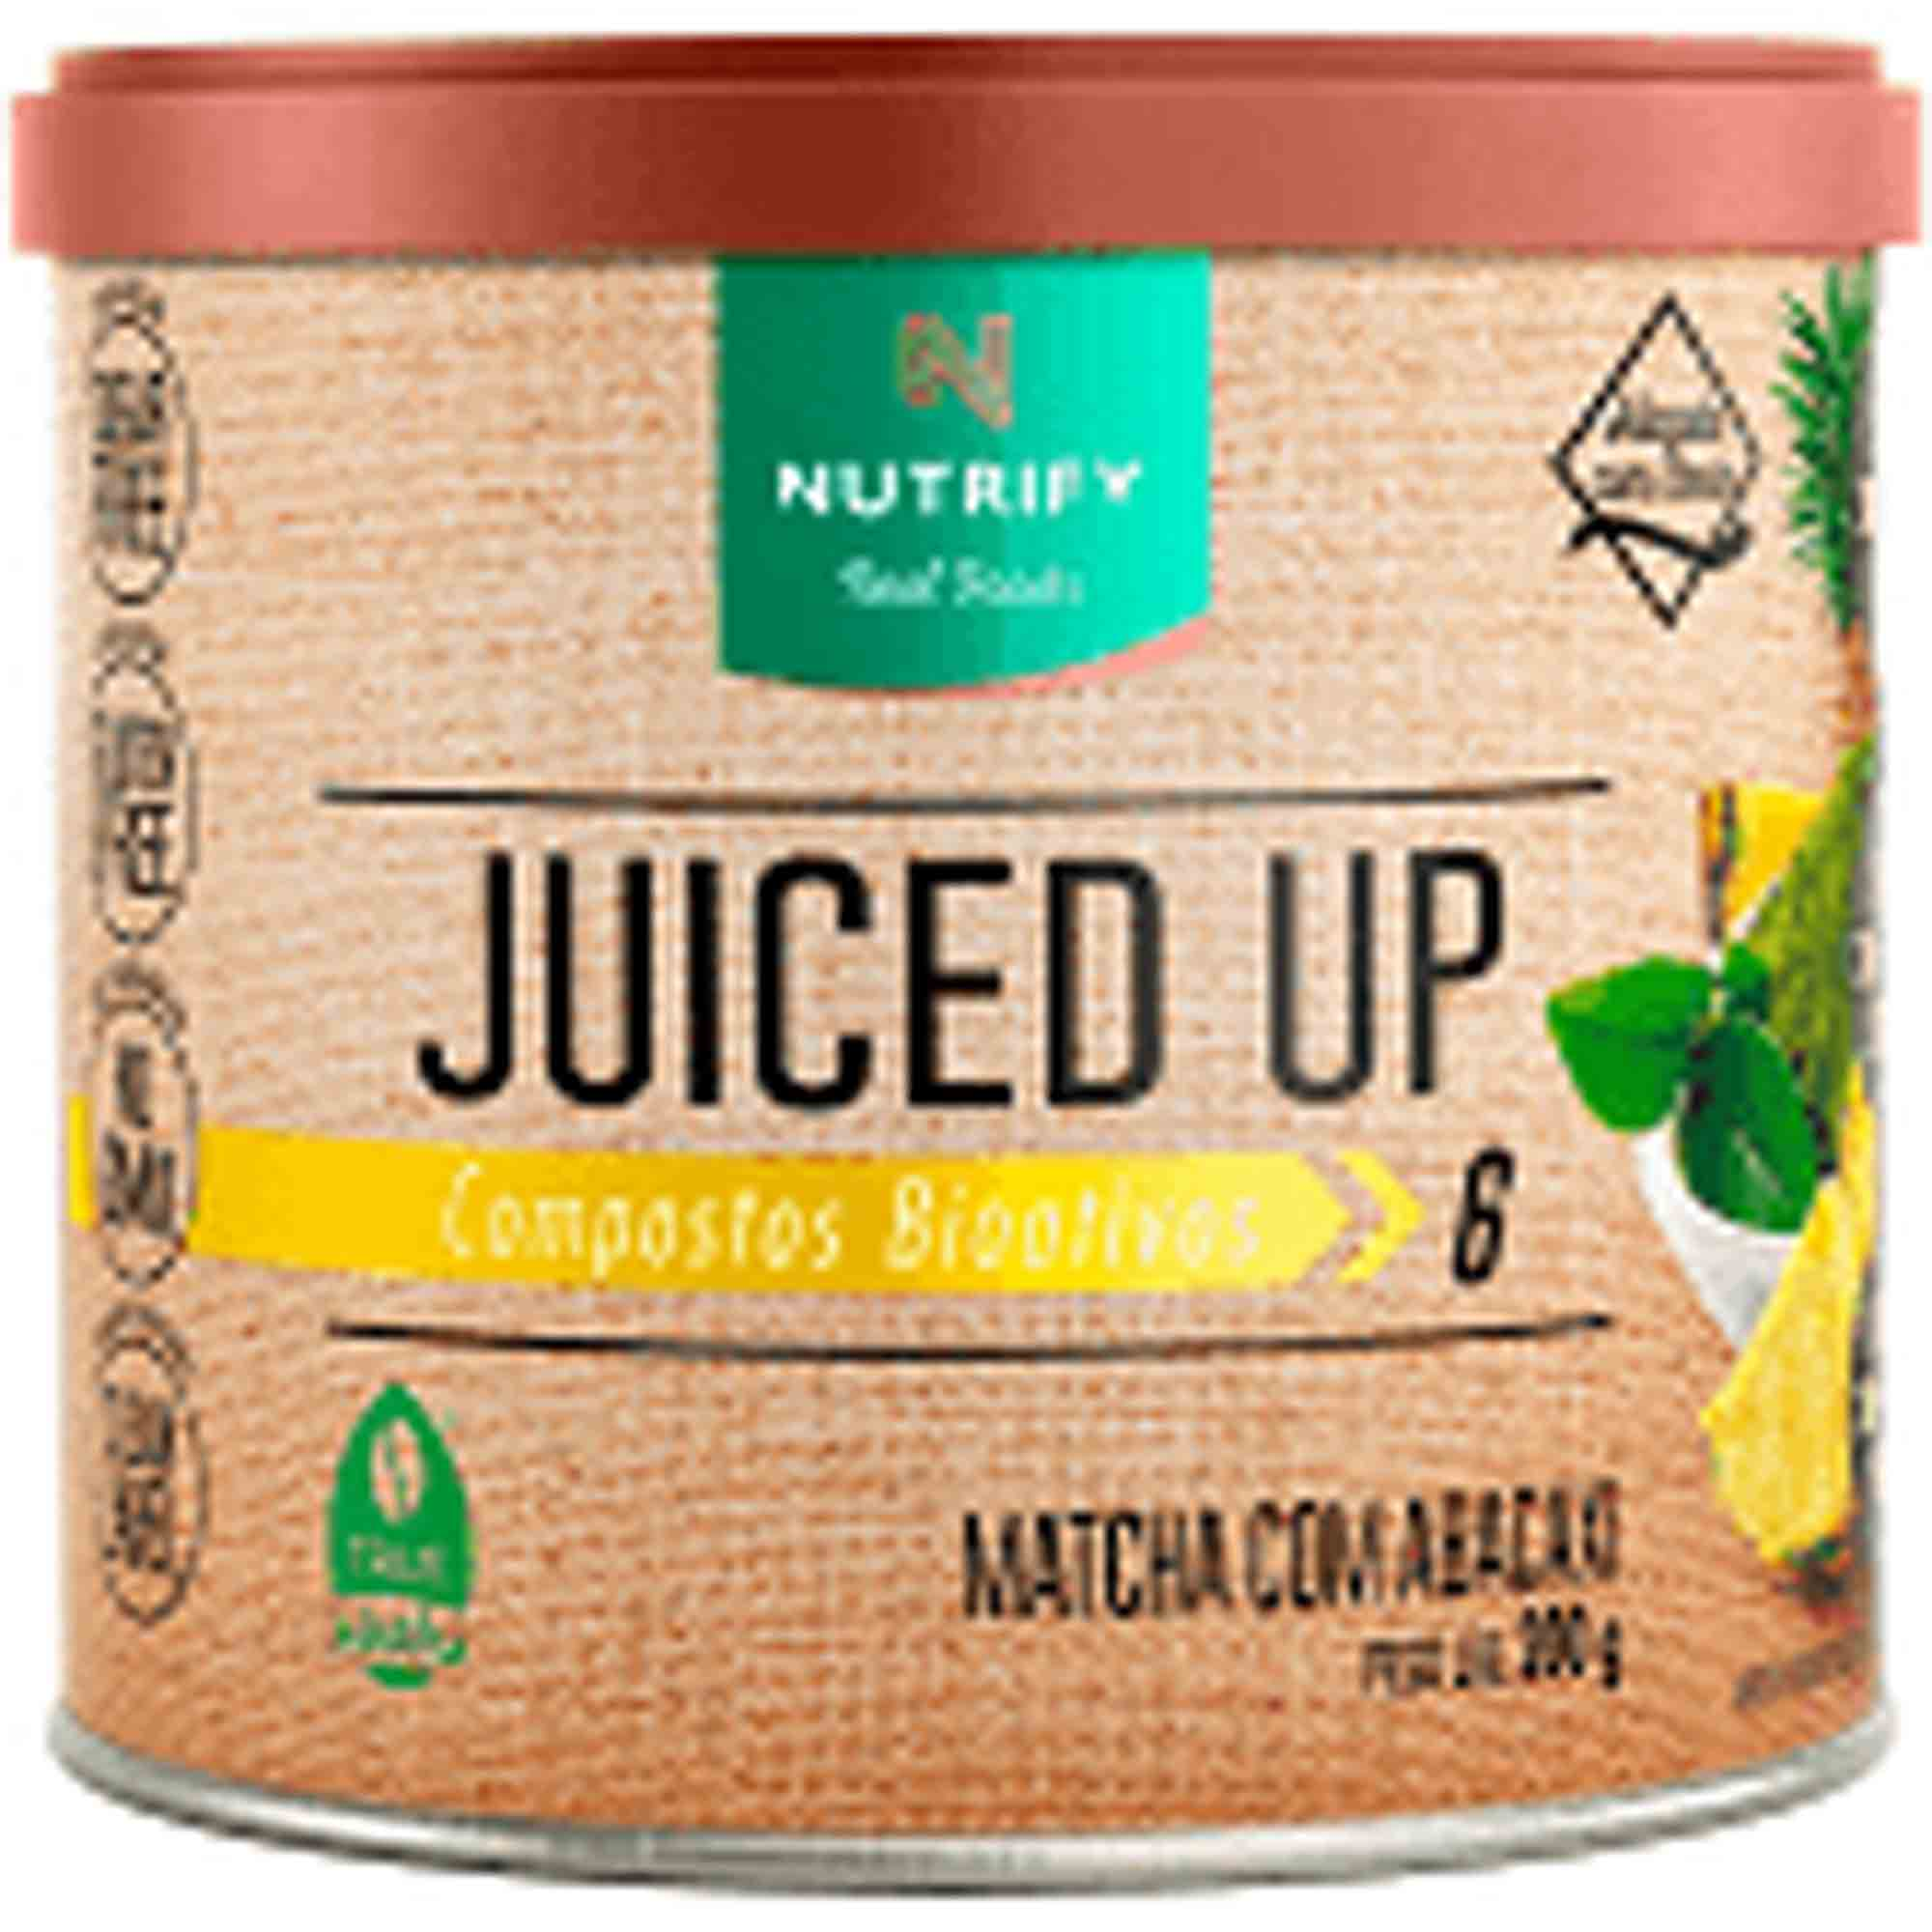 Juiced Up Abacaxi 200g Nutrify